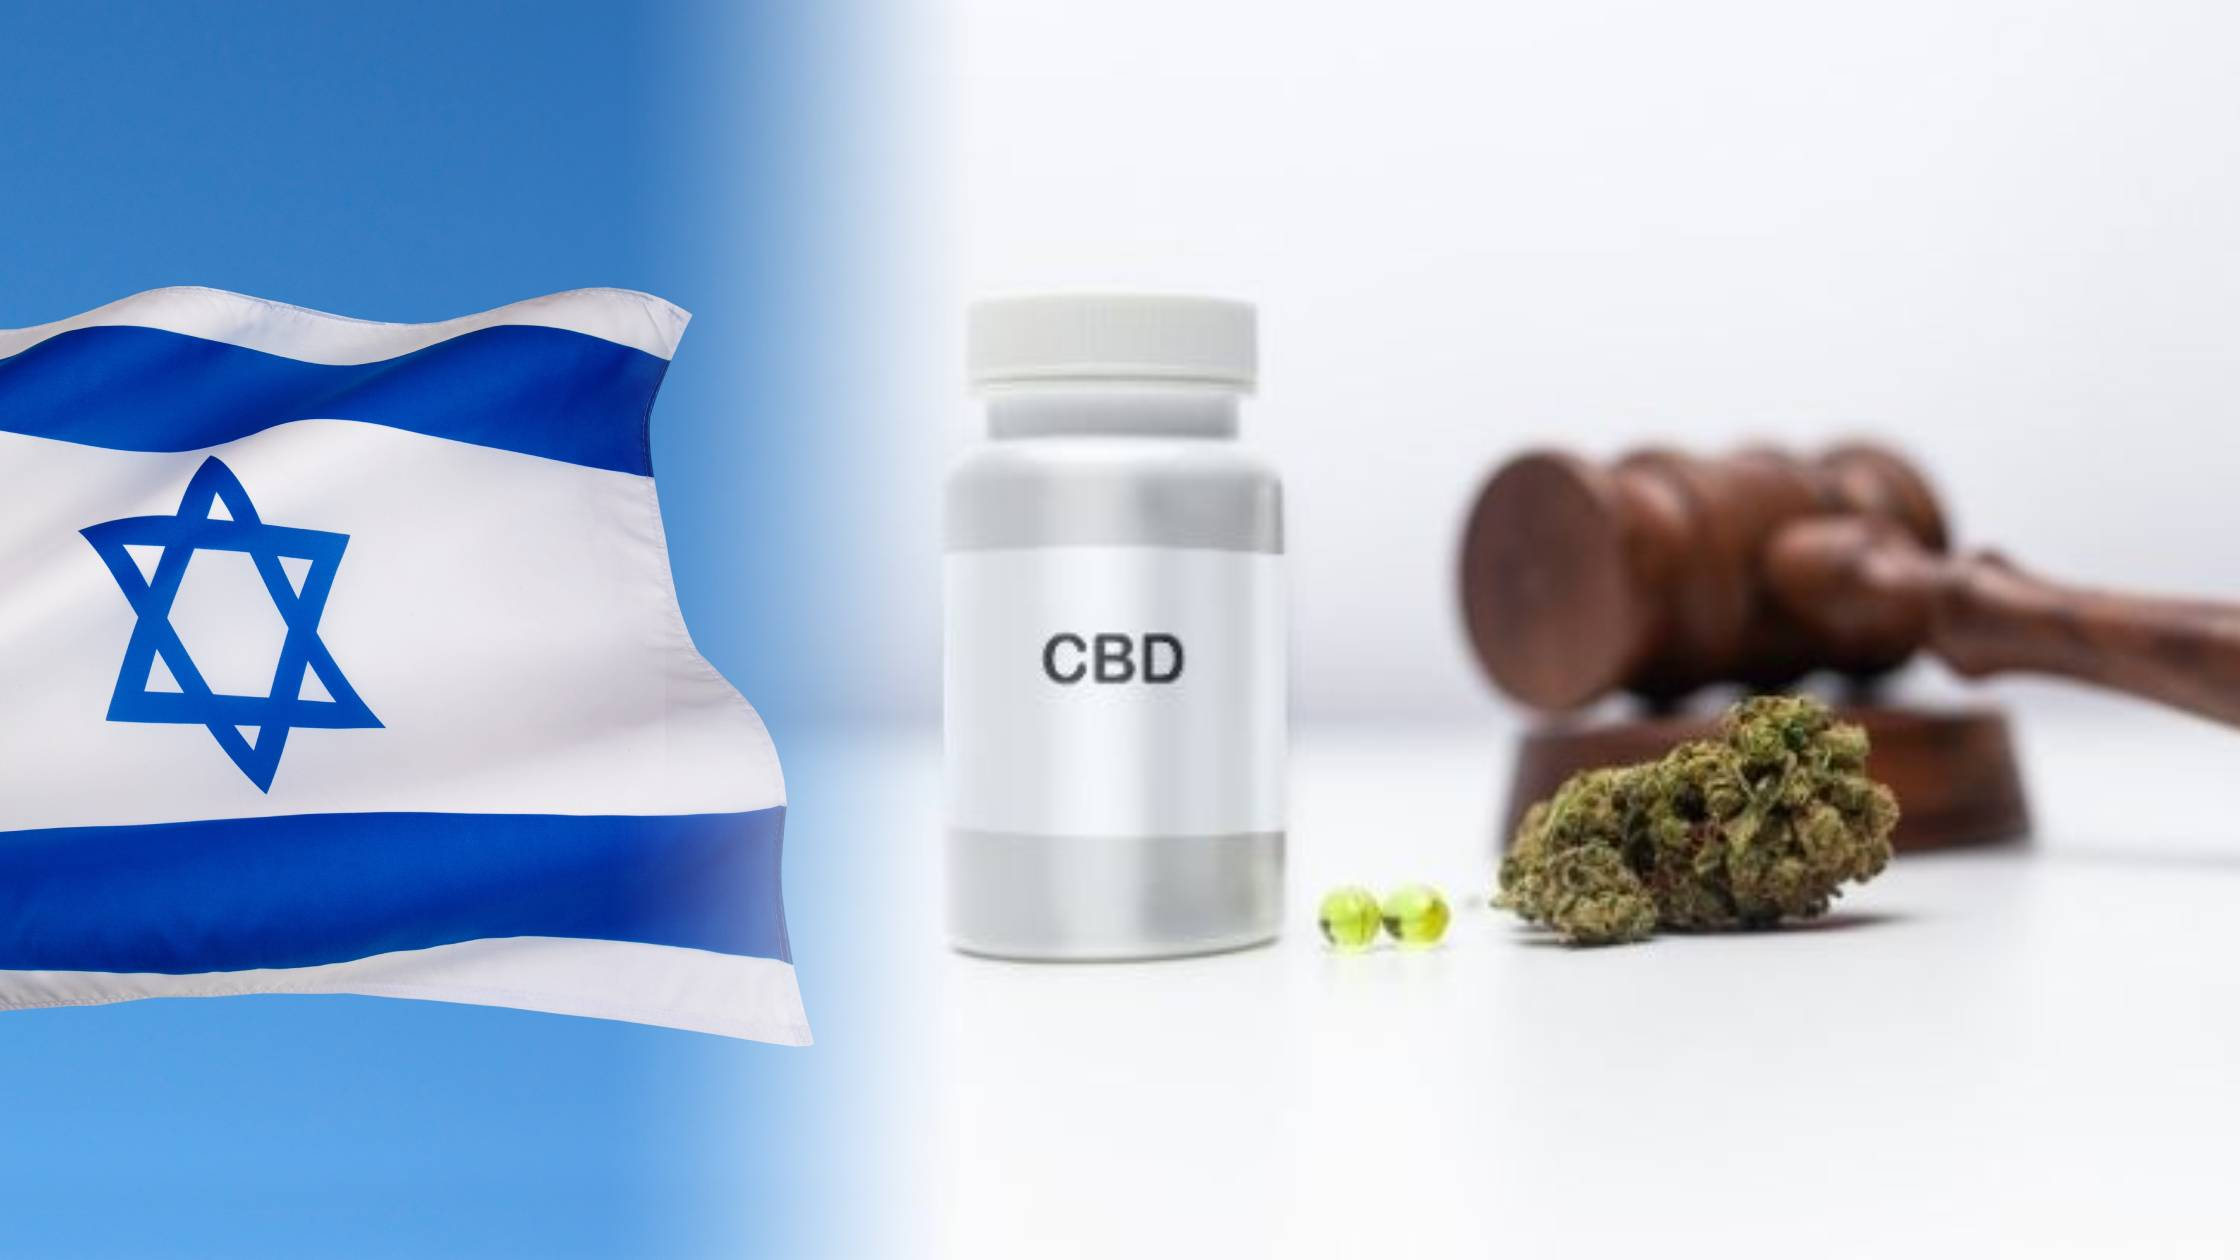 Israel law does not consider CBD as a dangerous drug anymore